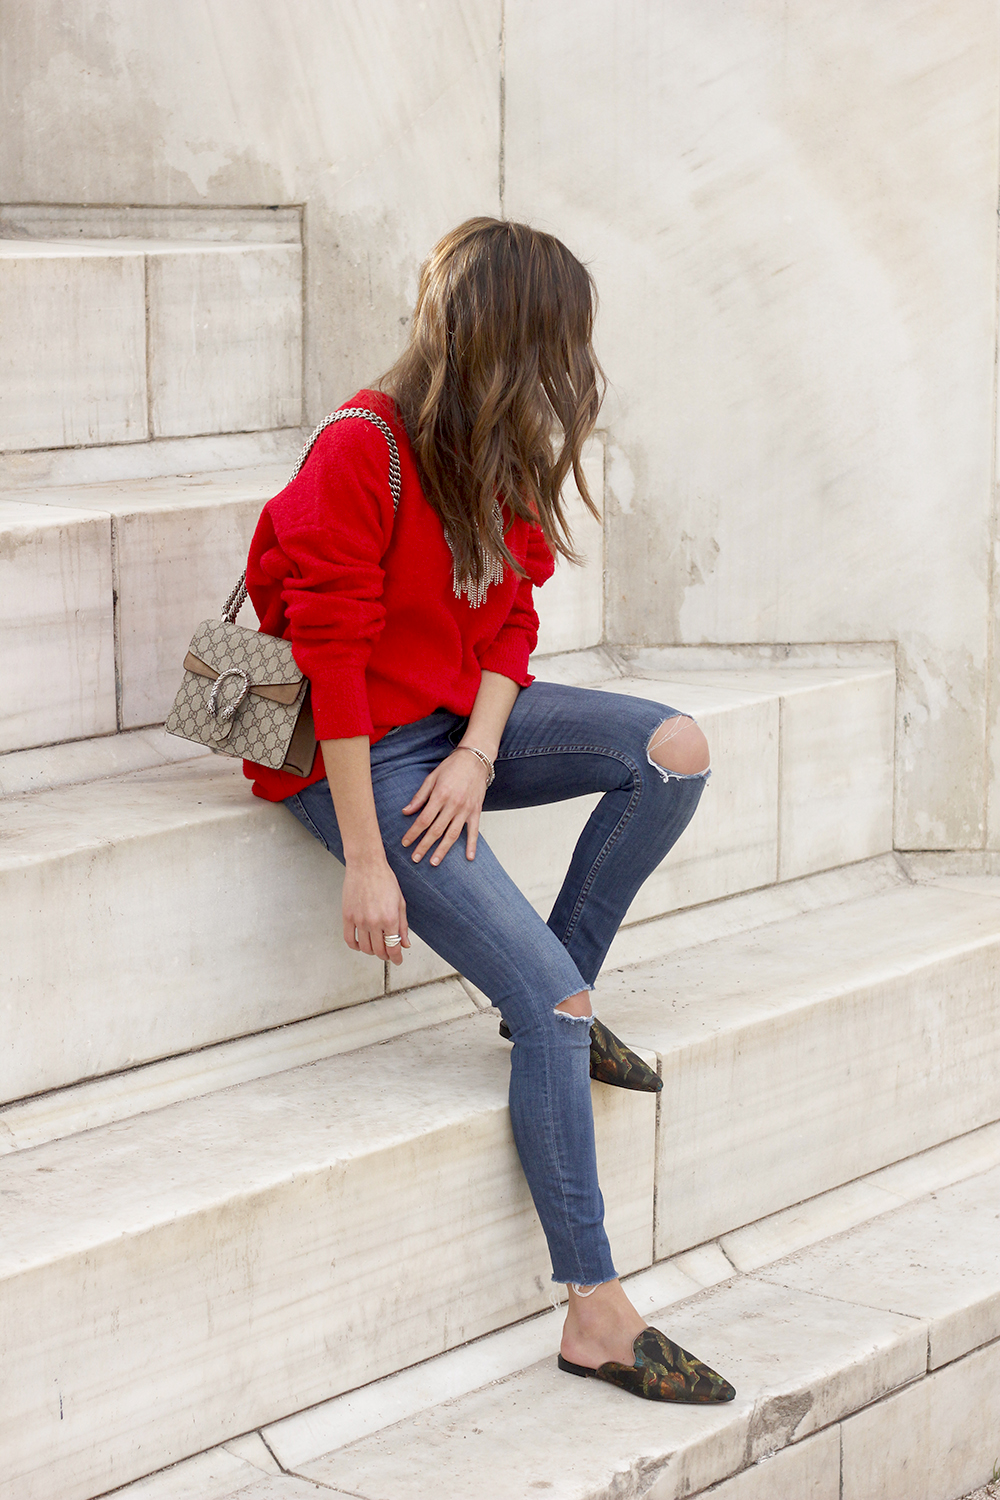 Mules Red sweater Ripped Jeans gucci bag céline sunnies fashion outfit style trend01